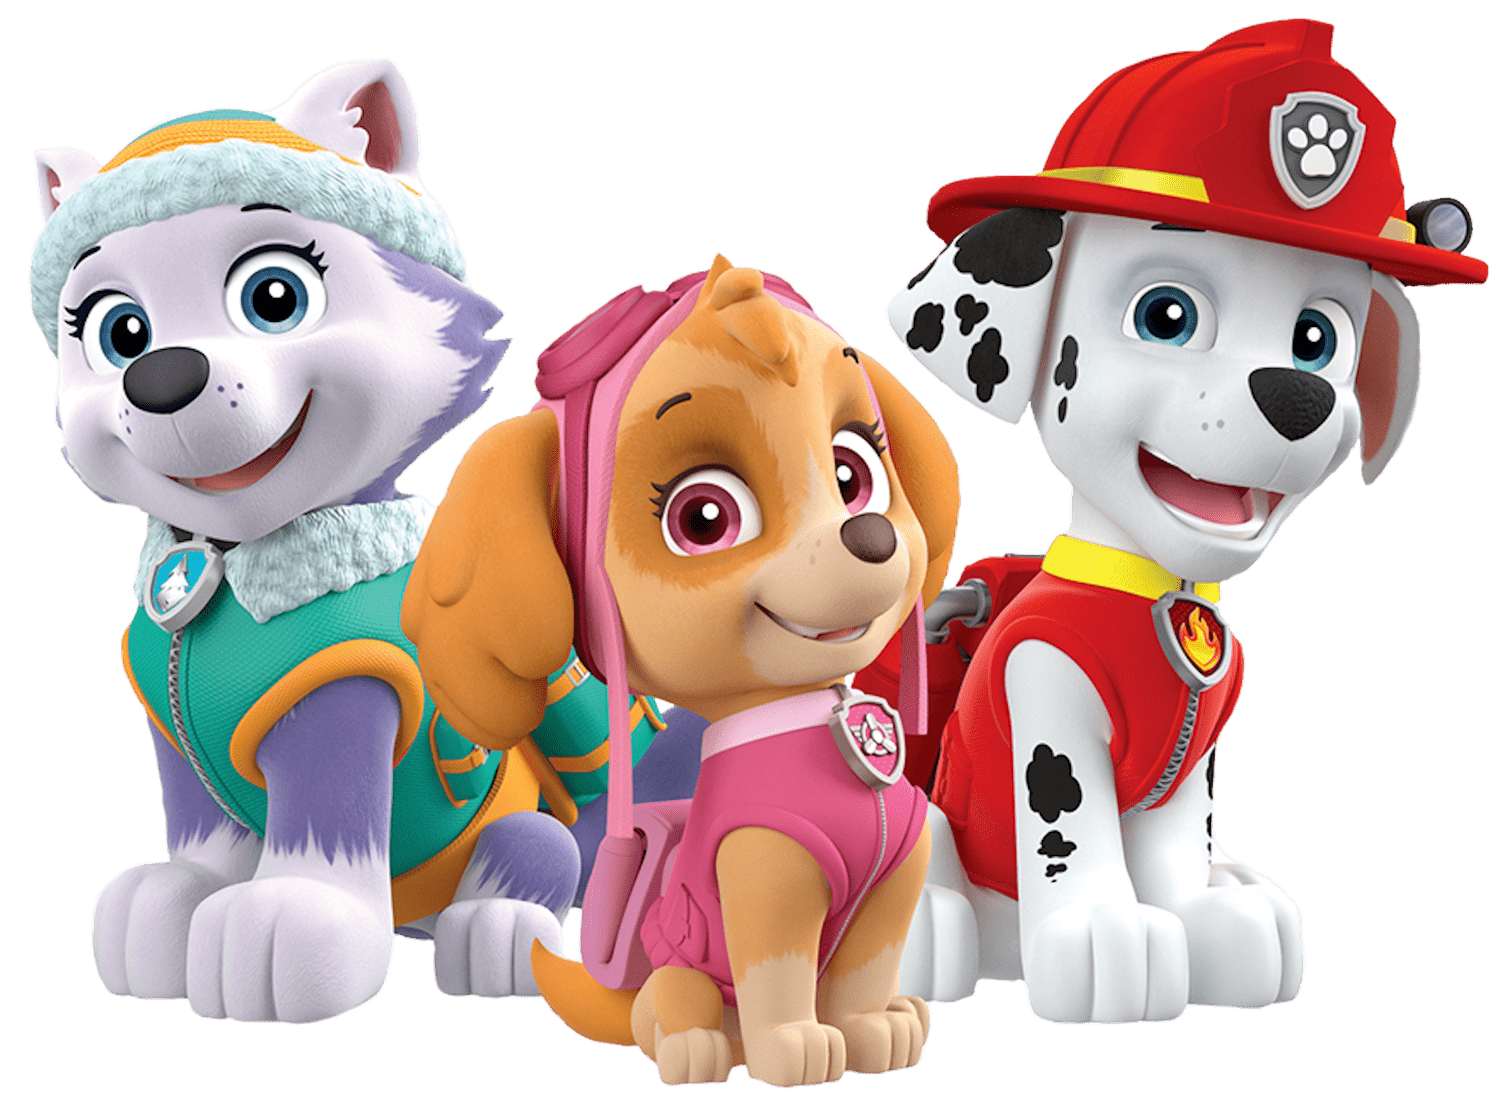 Paw patrol everest png. Marshall skye clipart